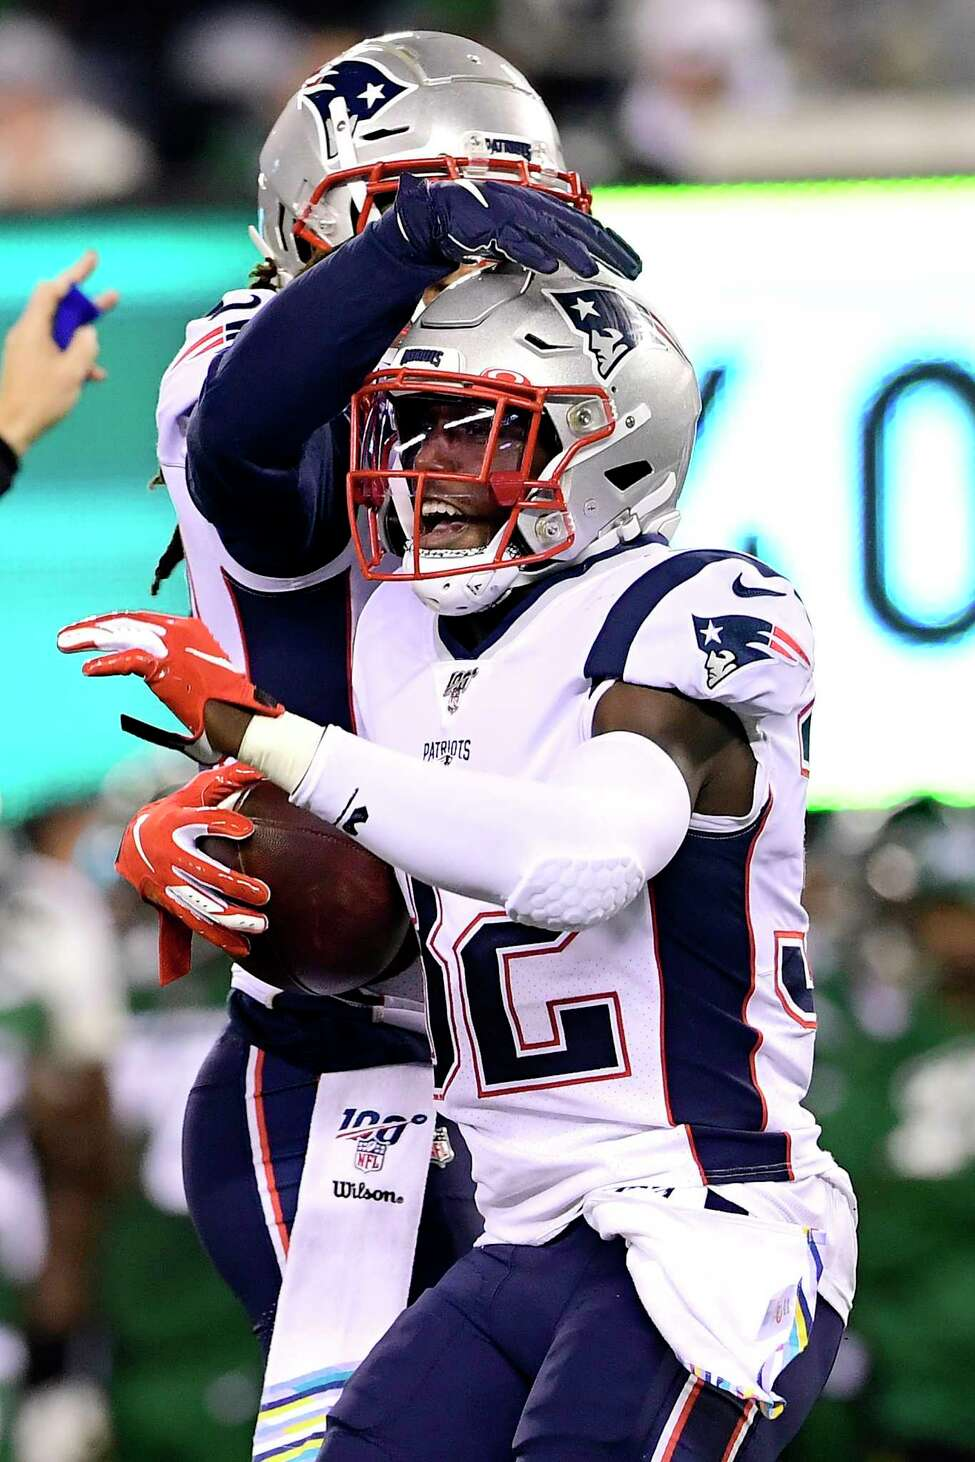 EAST RUTHERFORD, NEW JERSEY - OCTOBER 21: Devin McCourty #32 of the New England Patriots is congratulated by his teammate Stephon Gilmore #24 after intercepting the ball against the New York Jets of the New England Patriots during the first half at MetLife Stadium on October 21, 2019 in East Rutherford, New Jersey. (Photo by Steven Ryan/Getty Images)